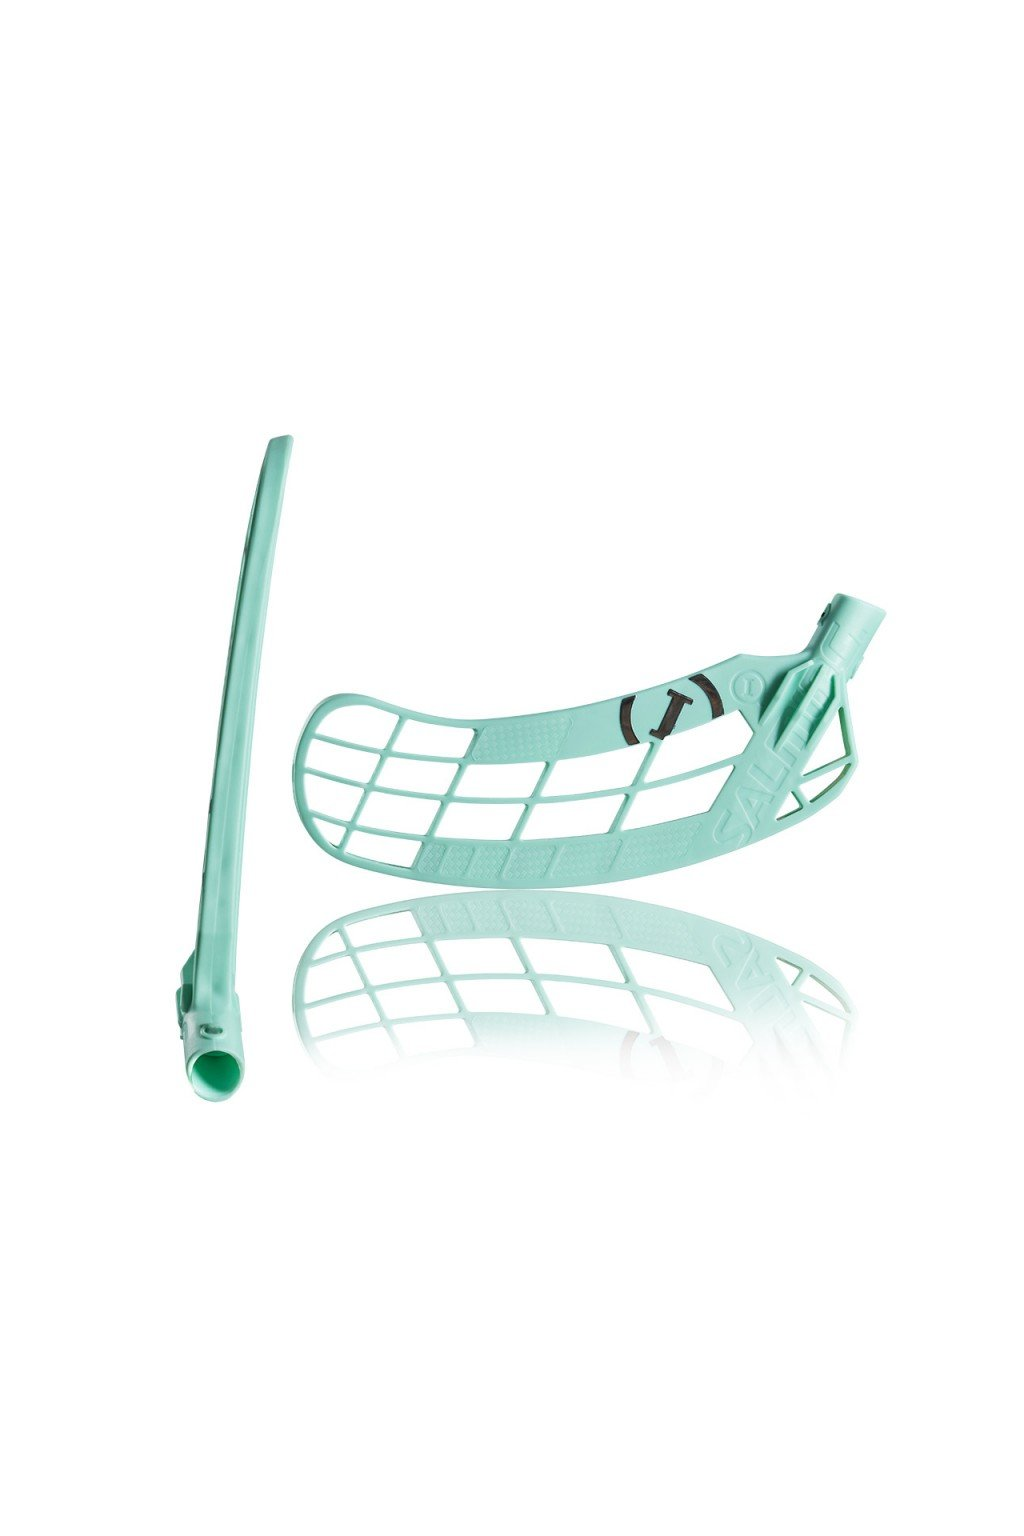 salming quest 1 blade touch plus mint green l